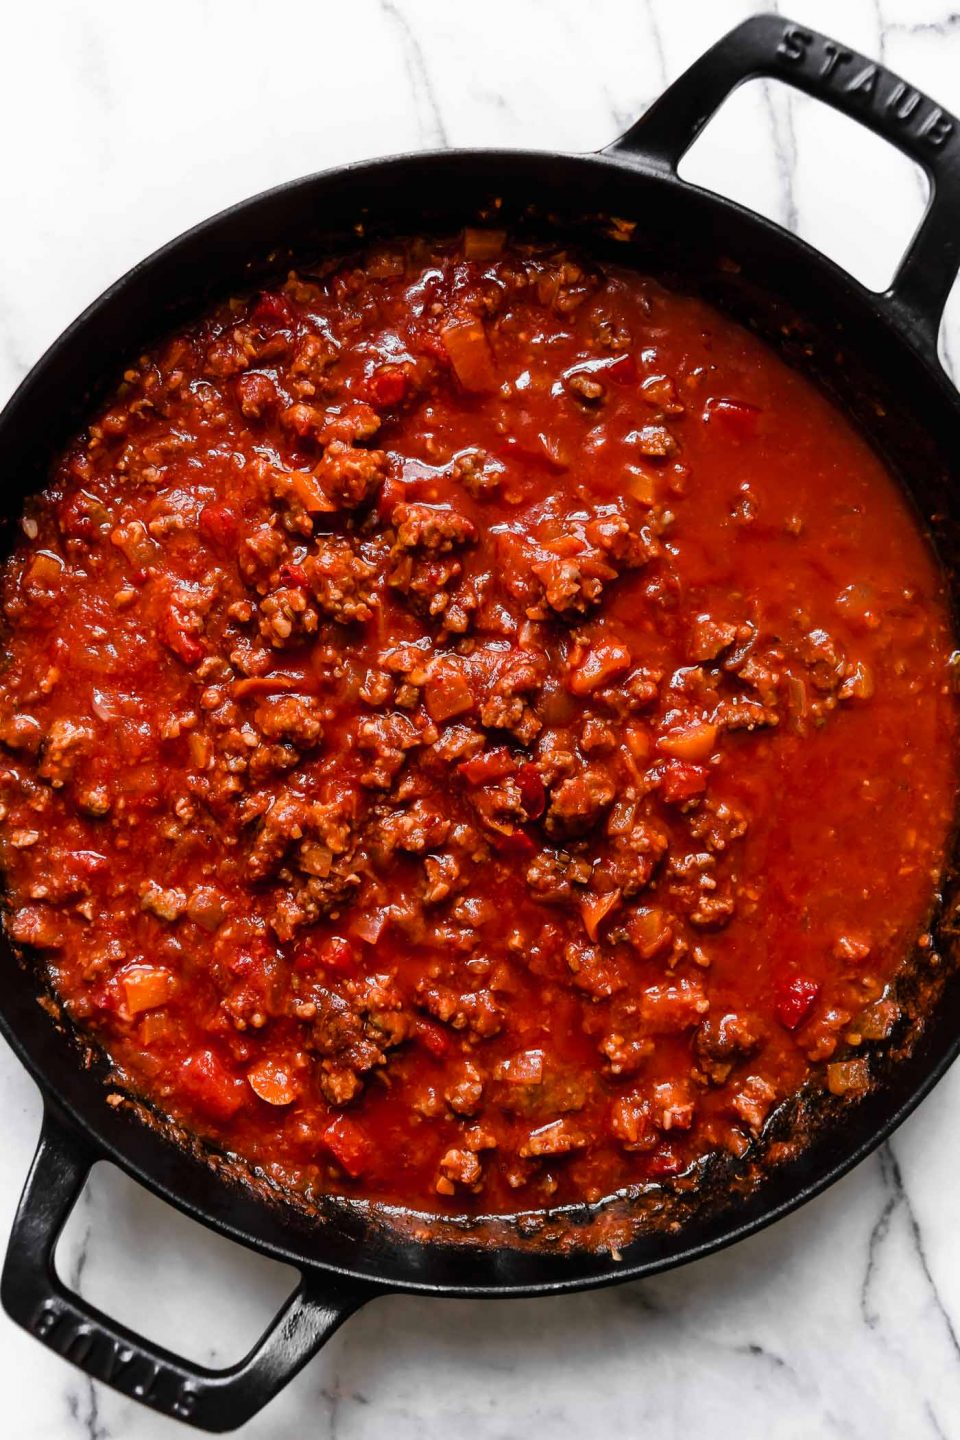 Italian Sausage and peppers pasta sauce in large black skillet.